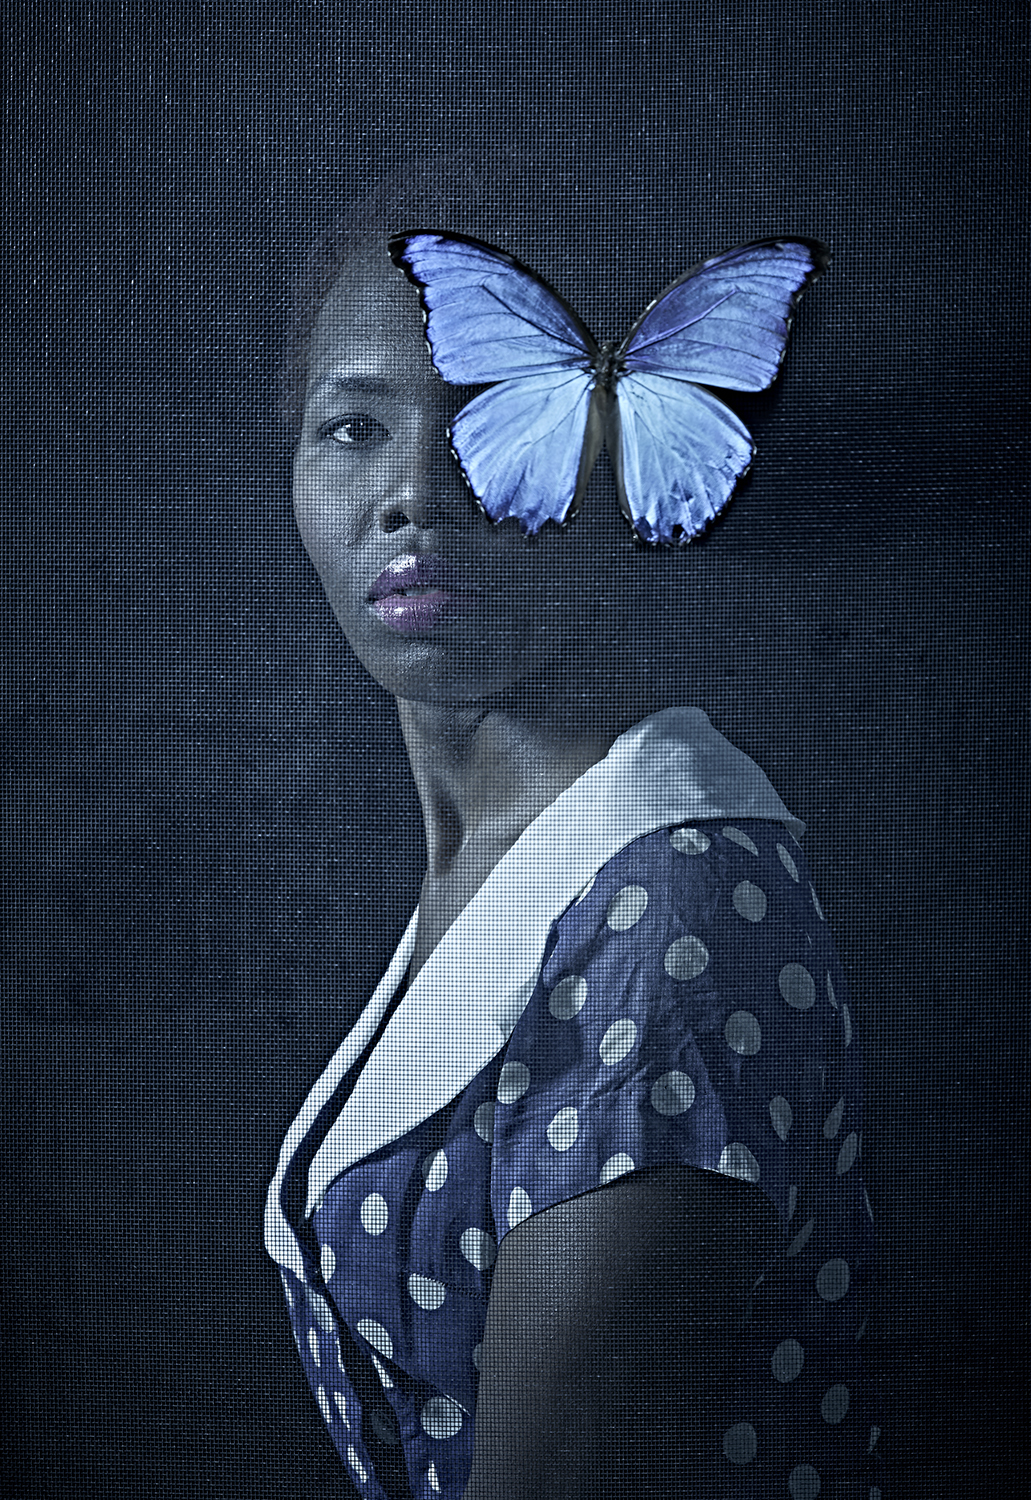 Butterfly   Maxine Helfman  6 x 9, Edition of 5, signed and numbered Archival inkjet print